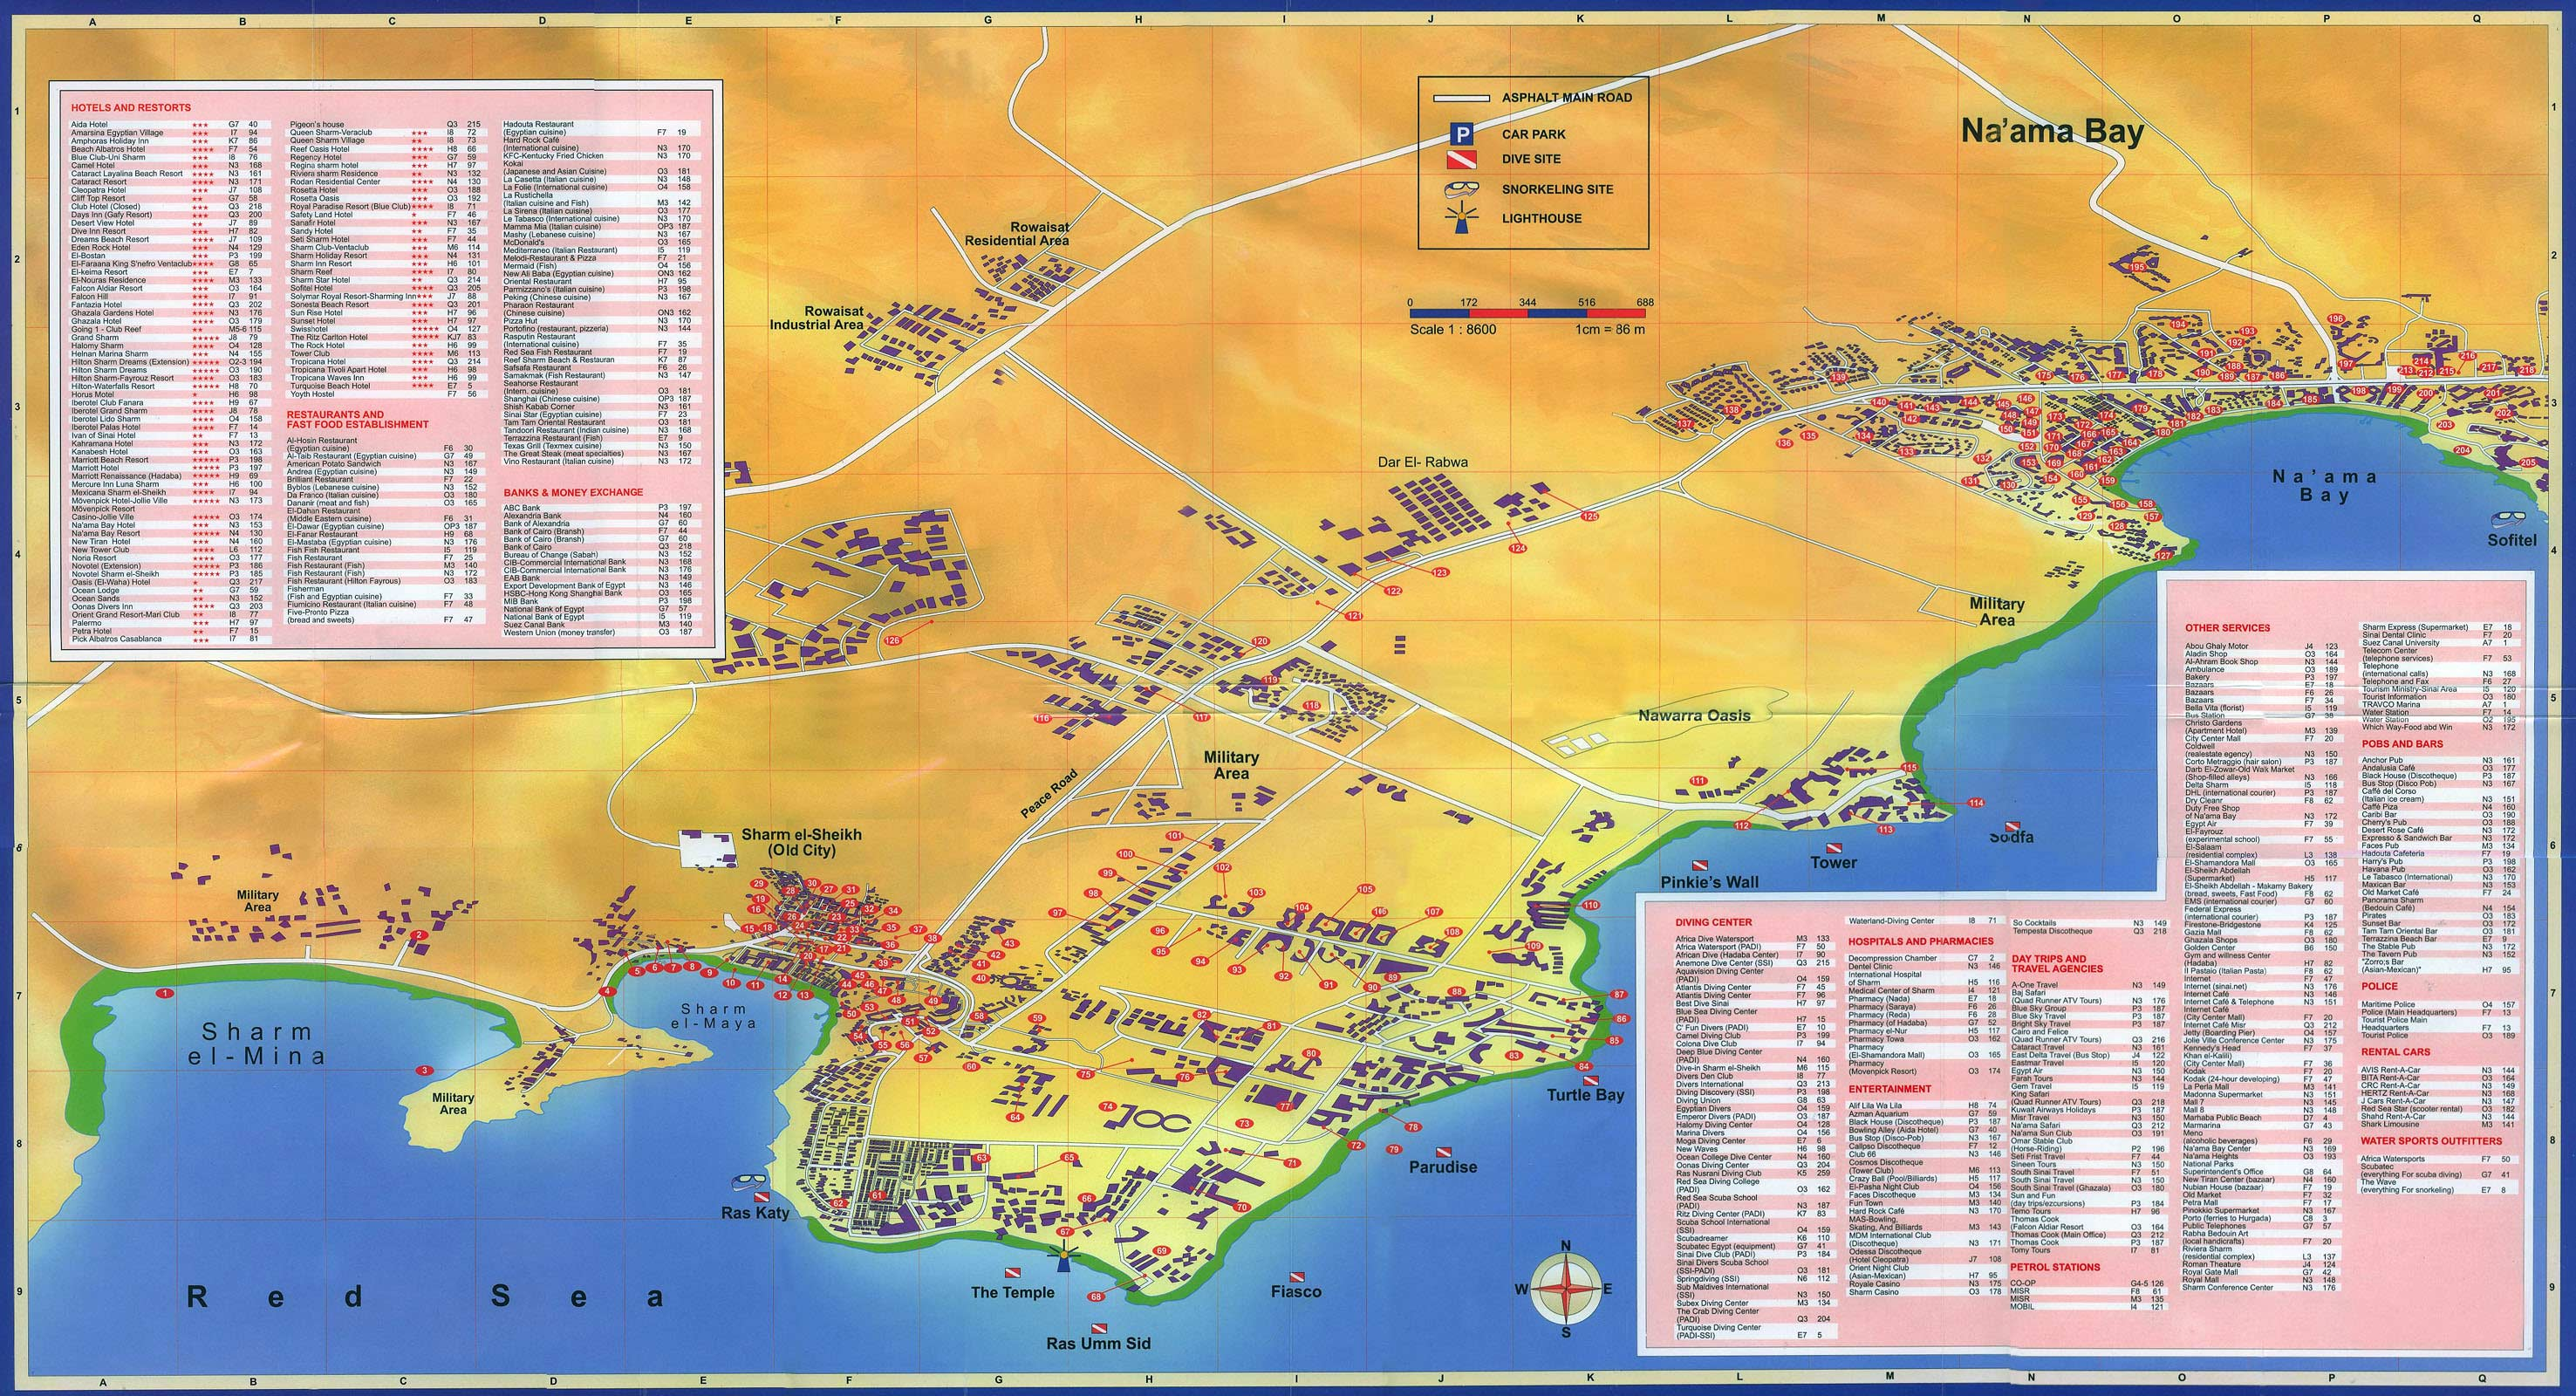 Naama Bay Egypt Tourist Map Sharm el Sheikh Egypt mappery